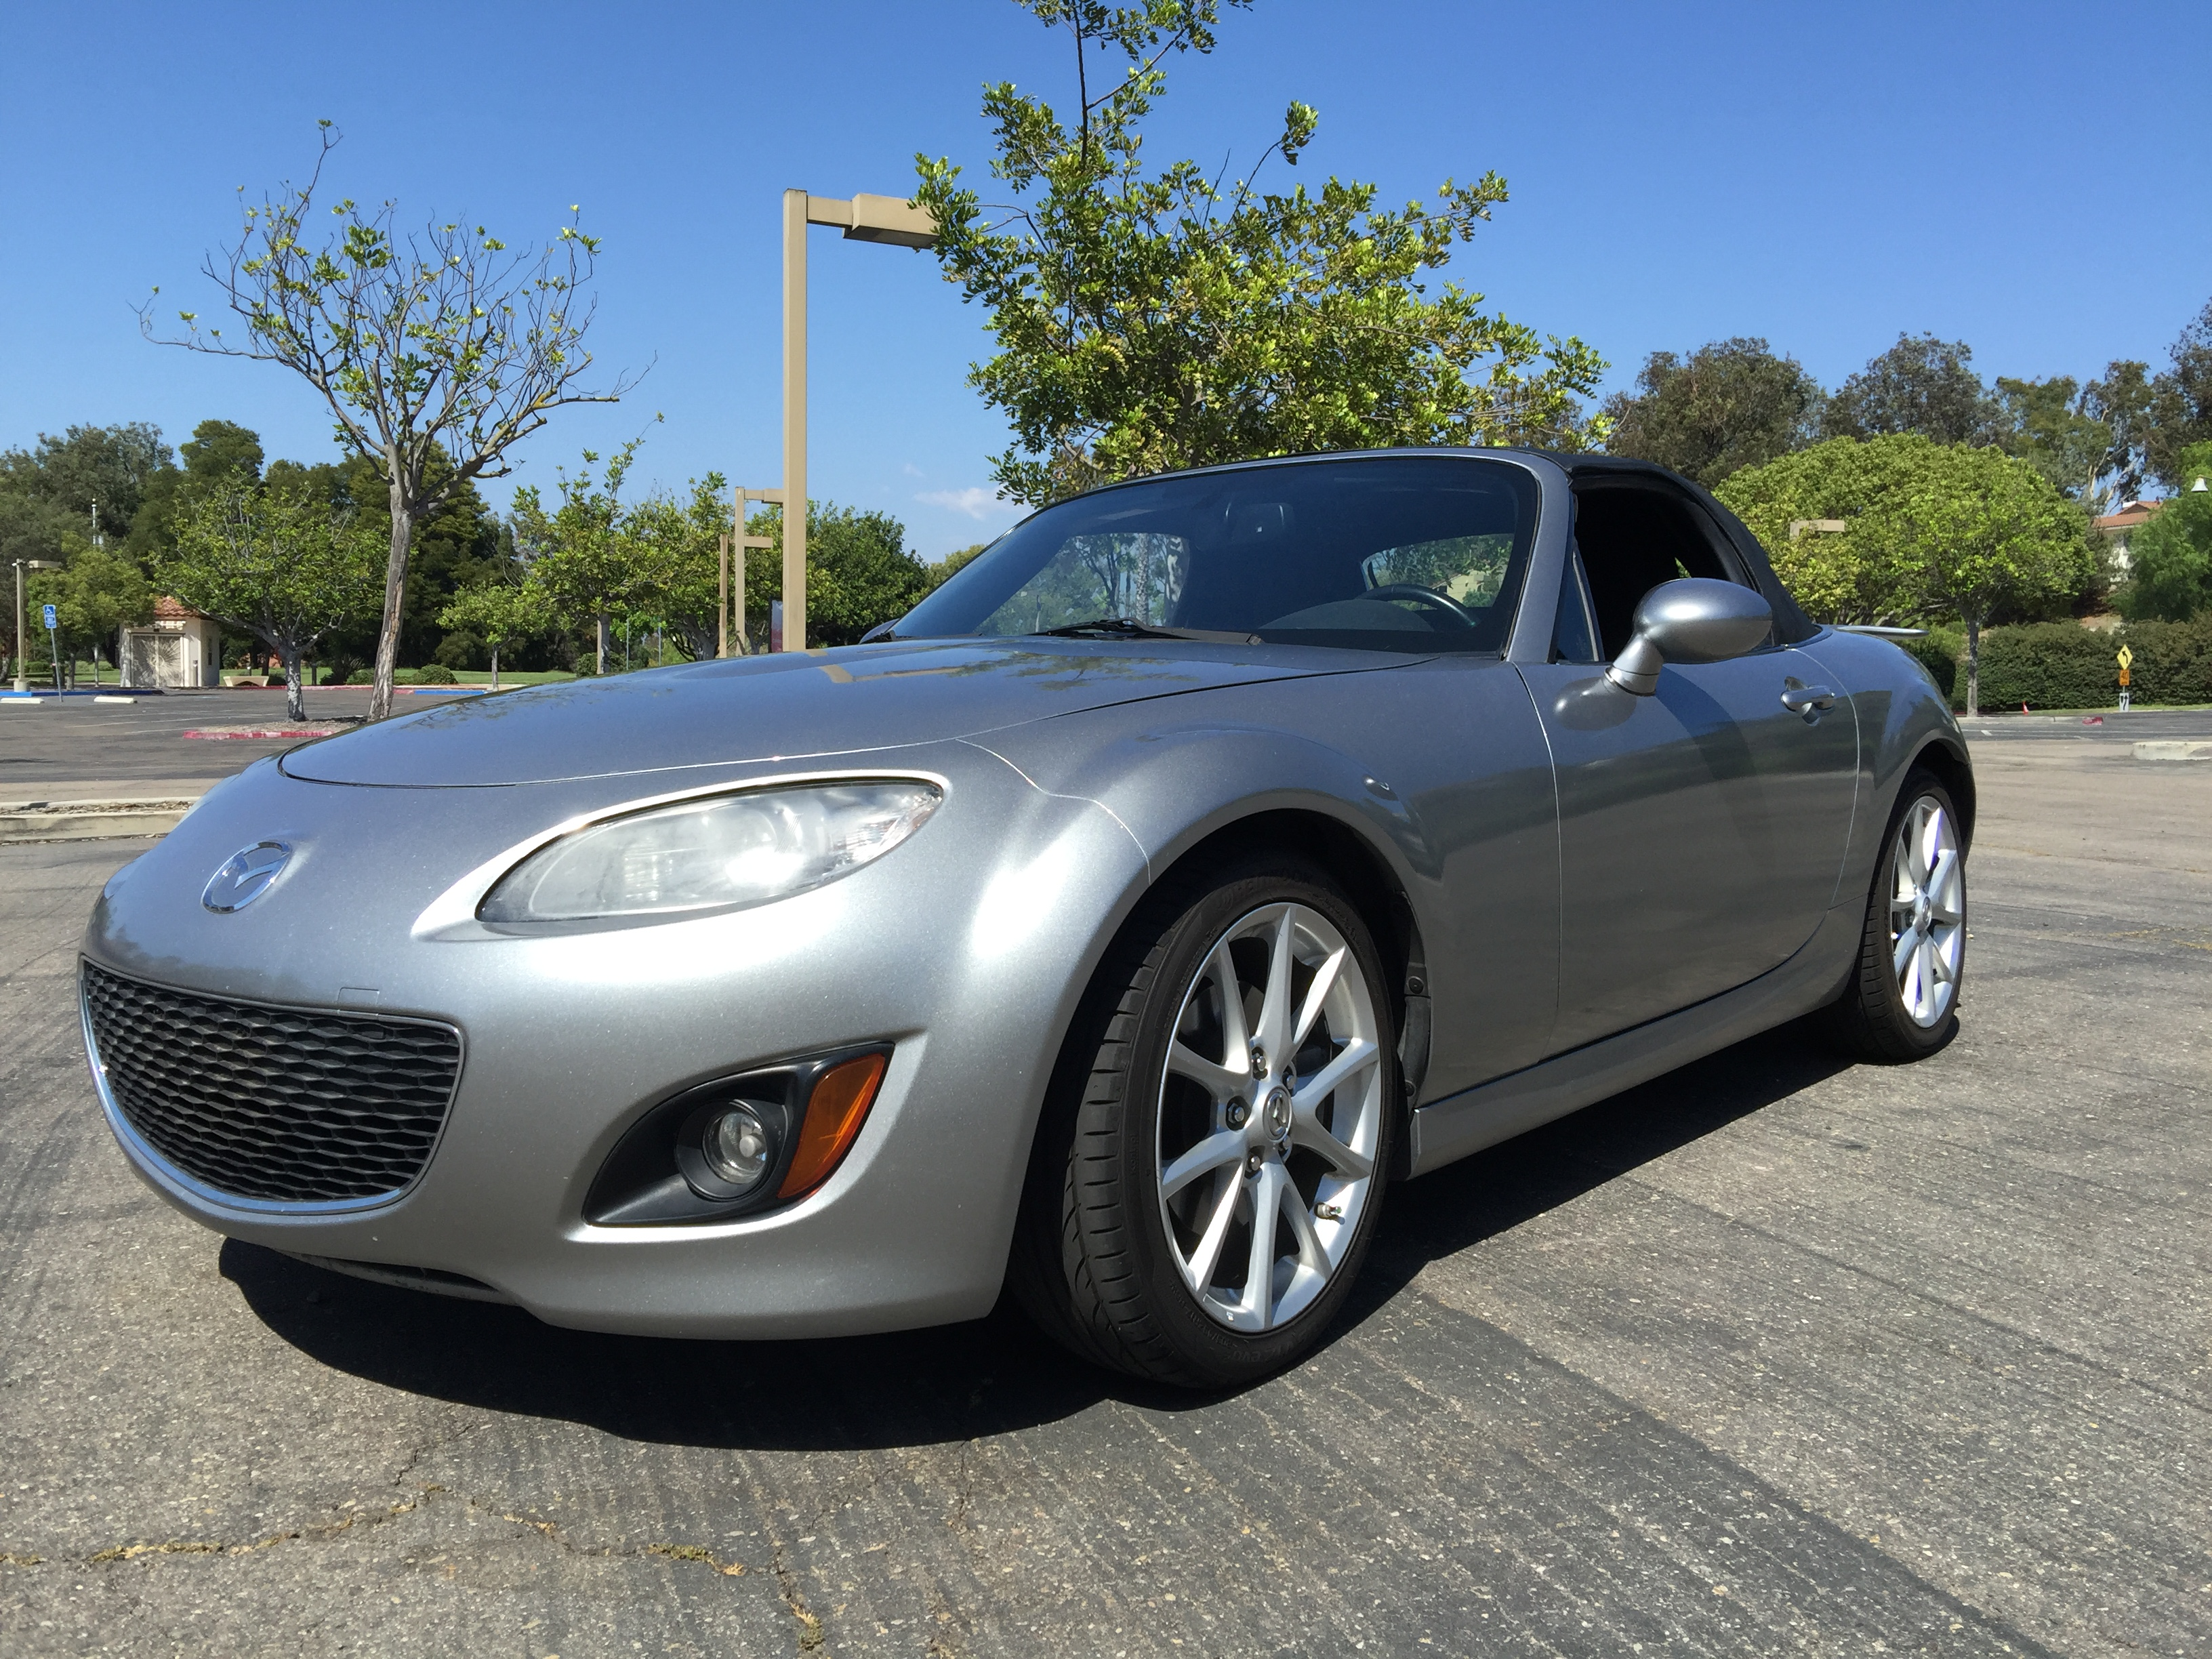 mazda ac cars paint with and pin pinterest convertible job for sale miata new